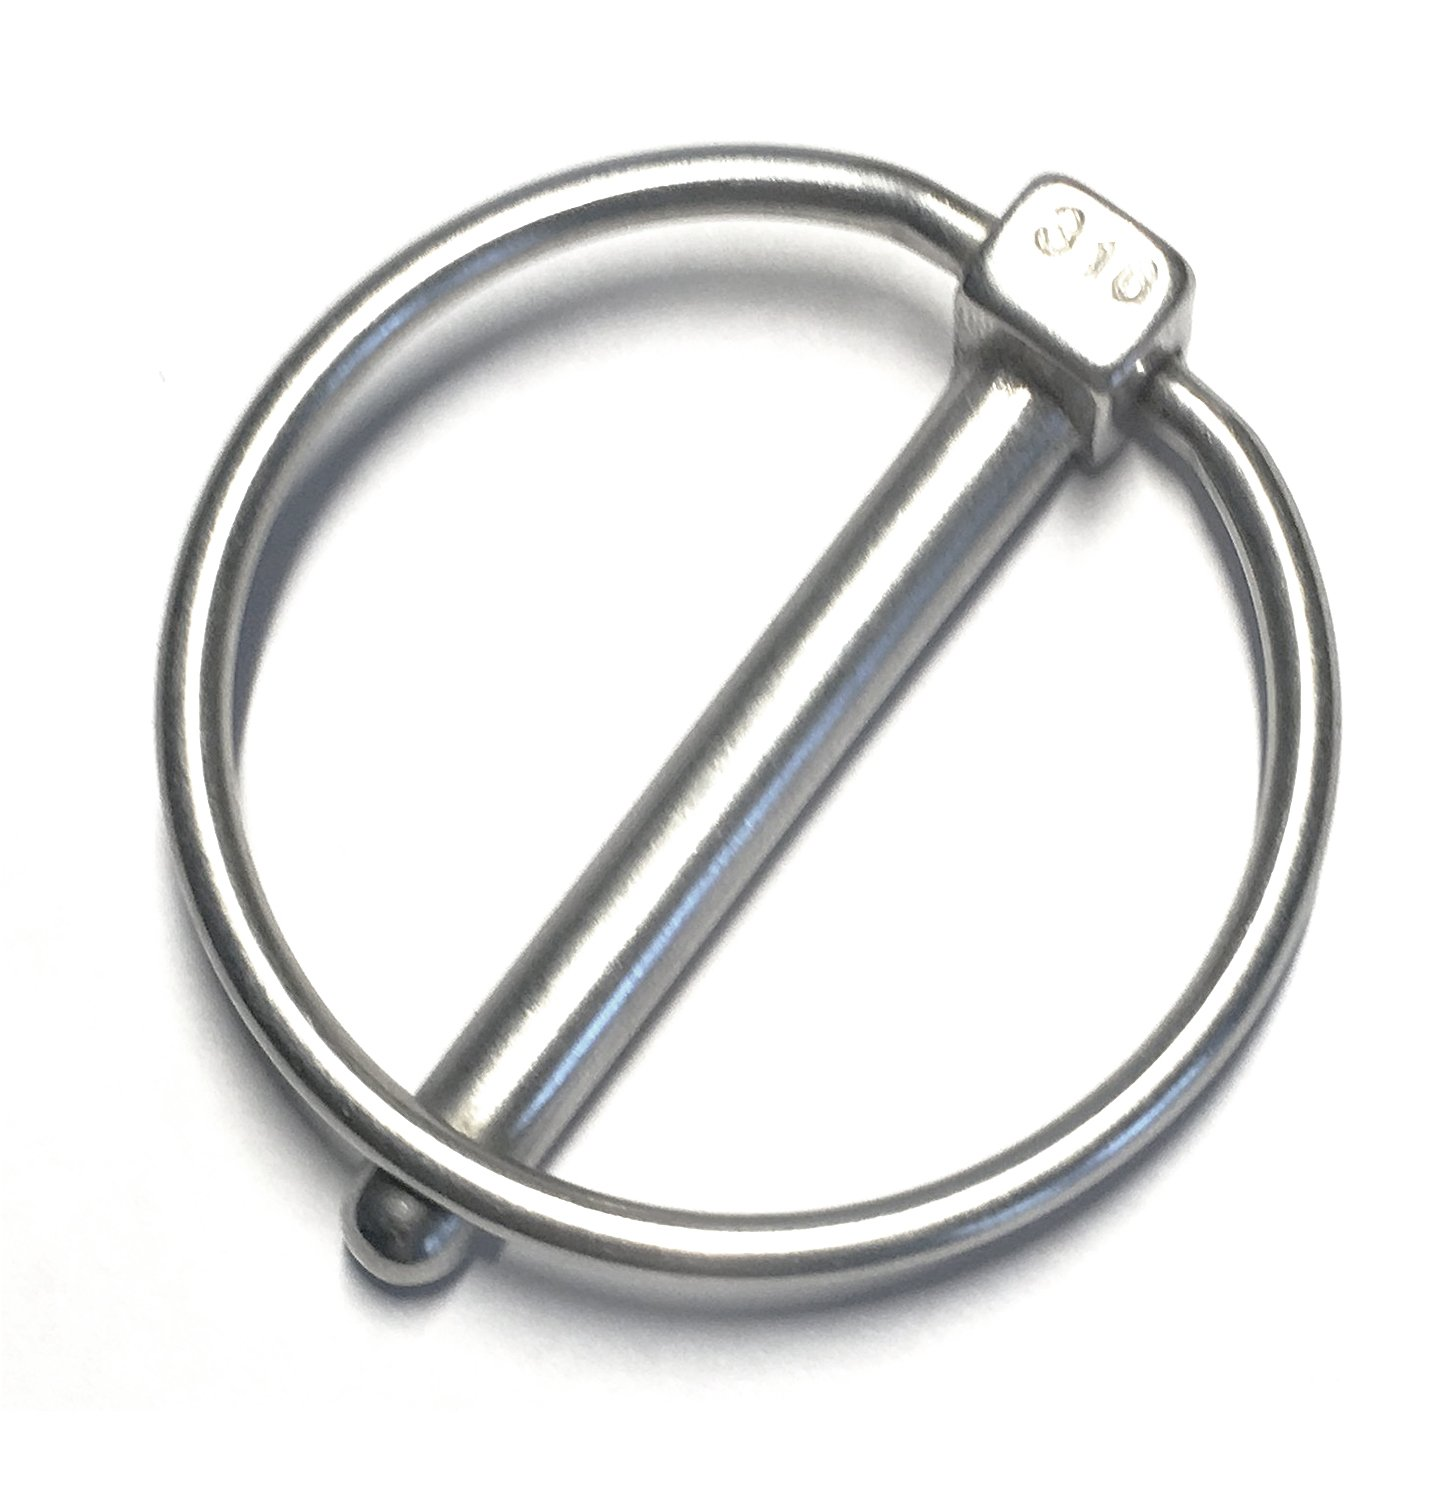 Stainless Steel 316 Linch Pin Ring Catch 8mm or 5//16 marine Grade 2 Pieces US Stainless